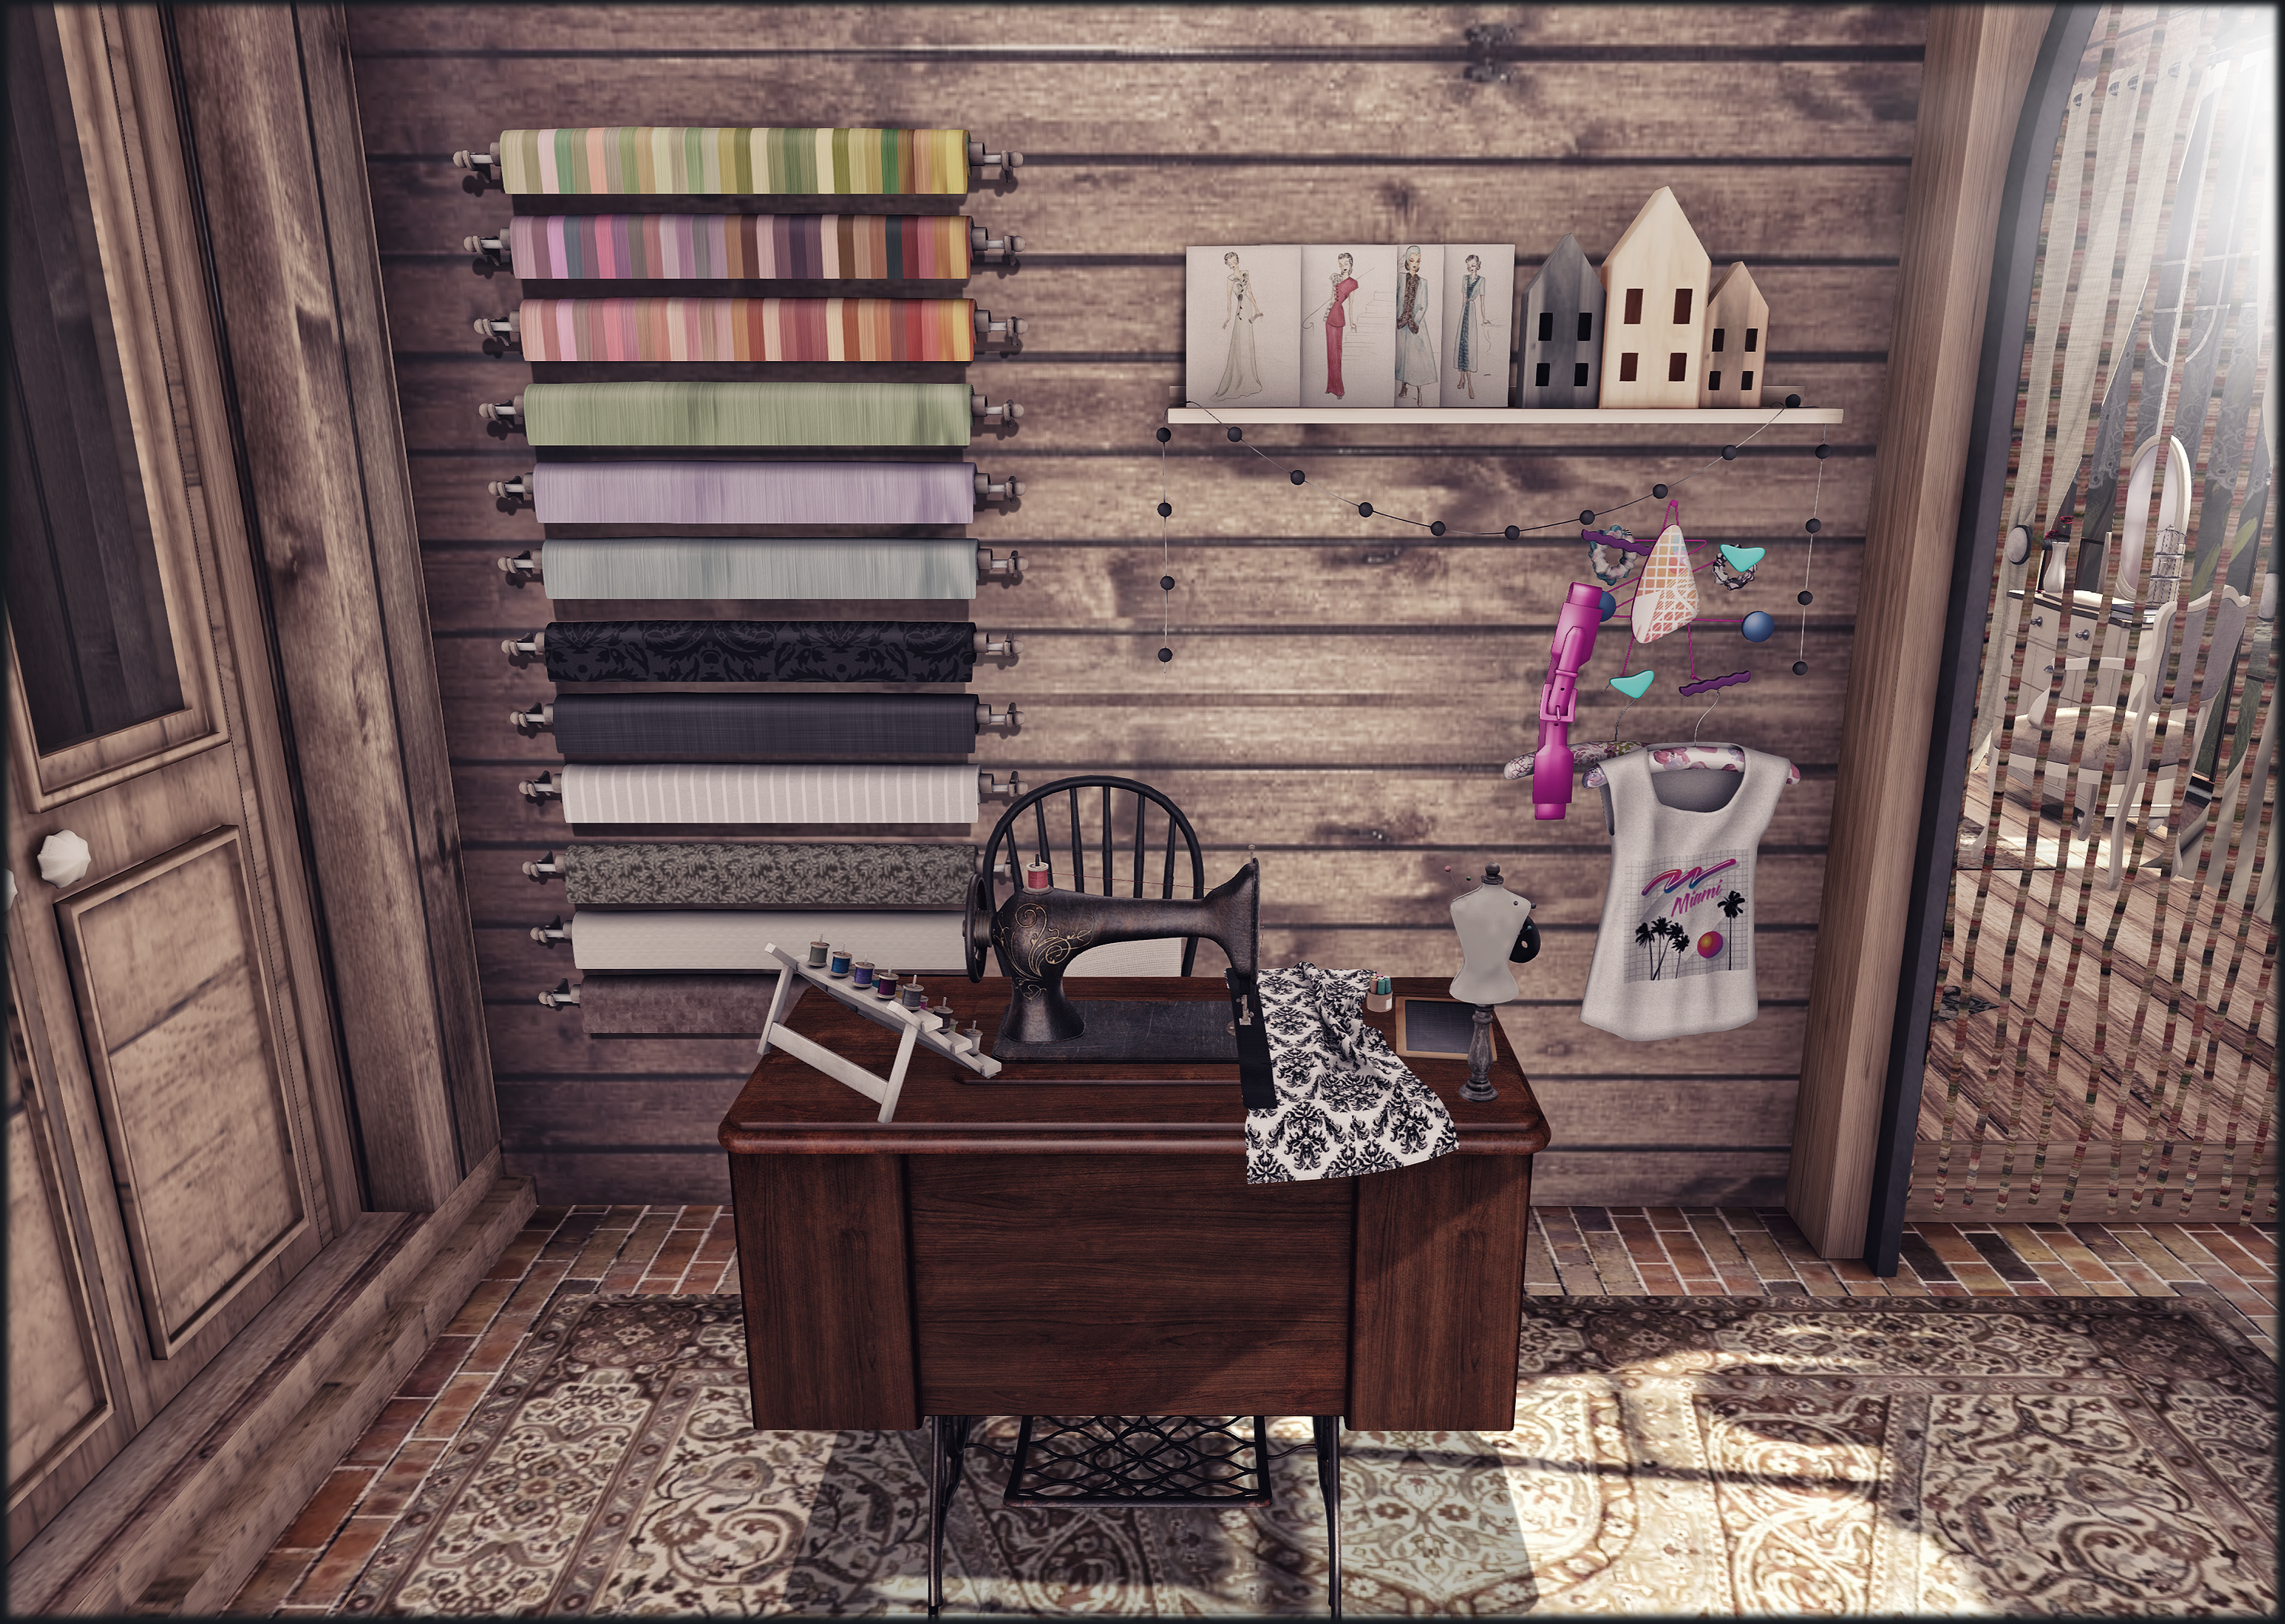 The Sewing Corner